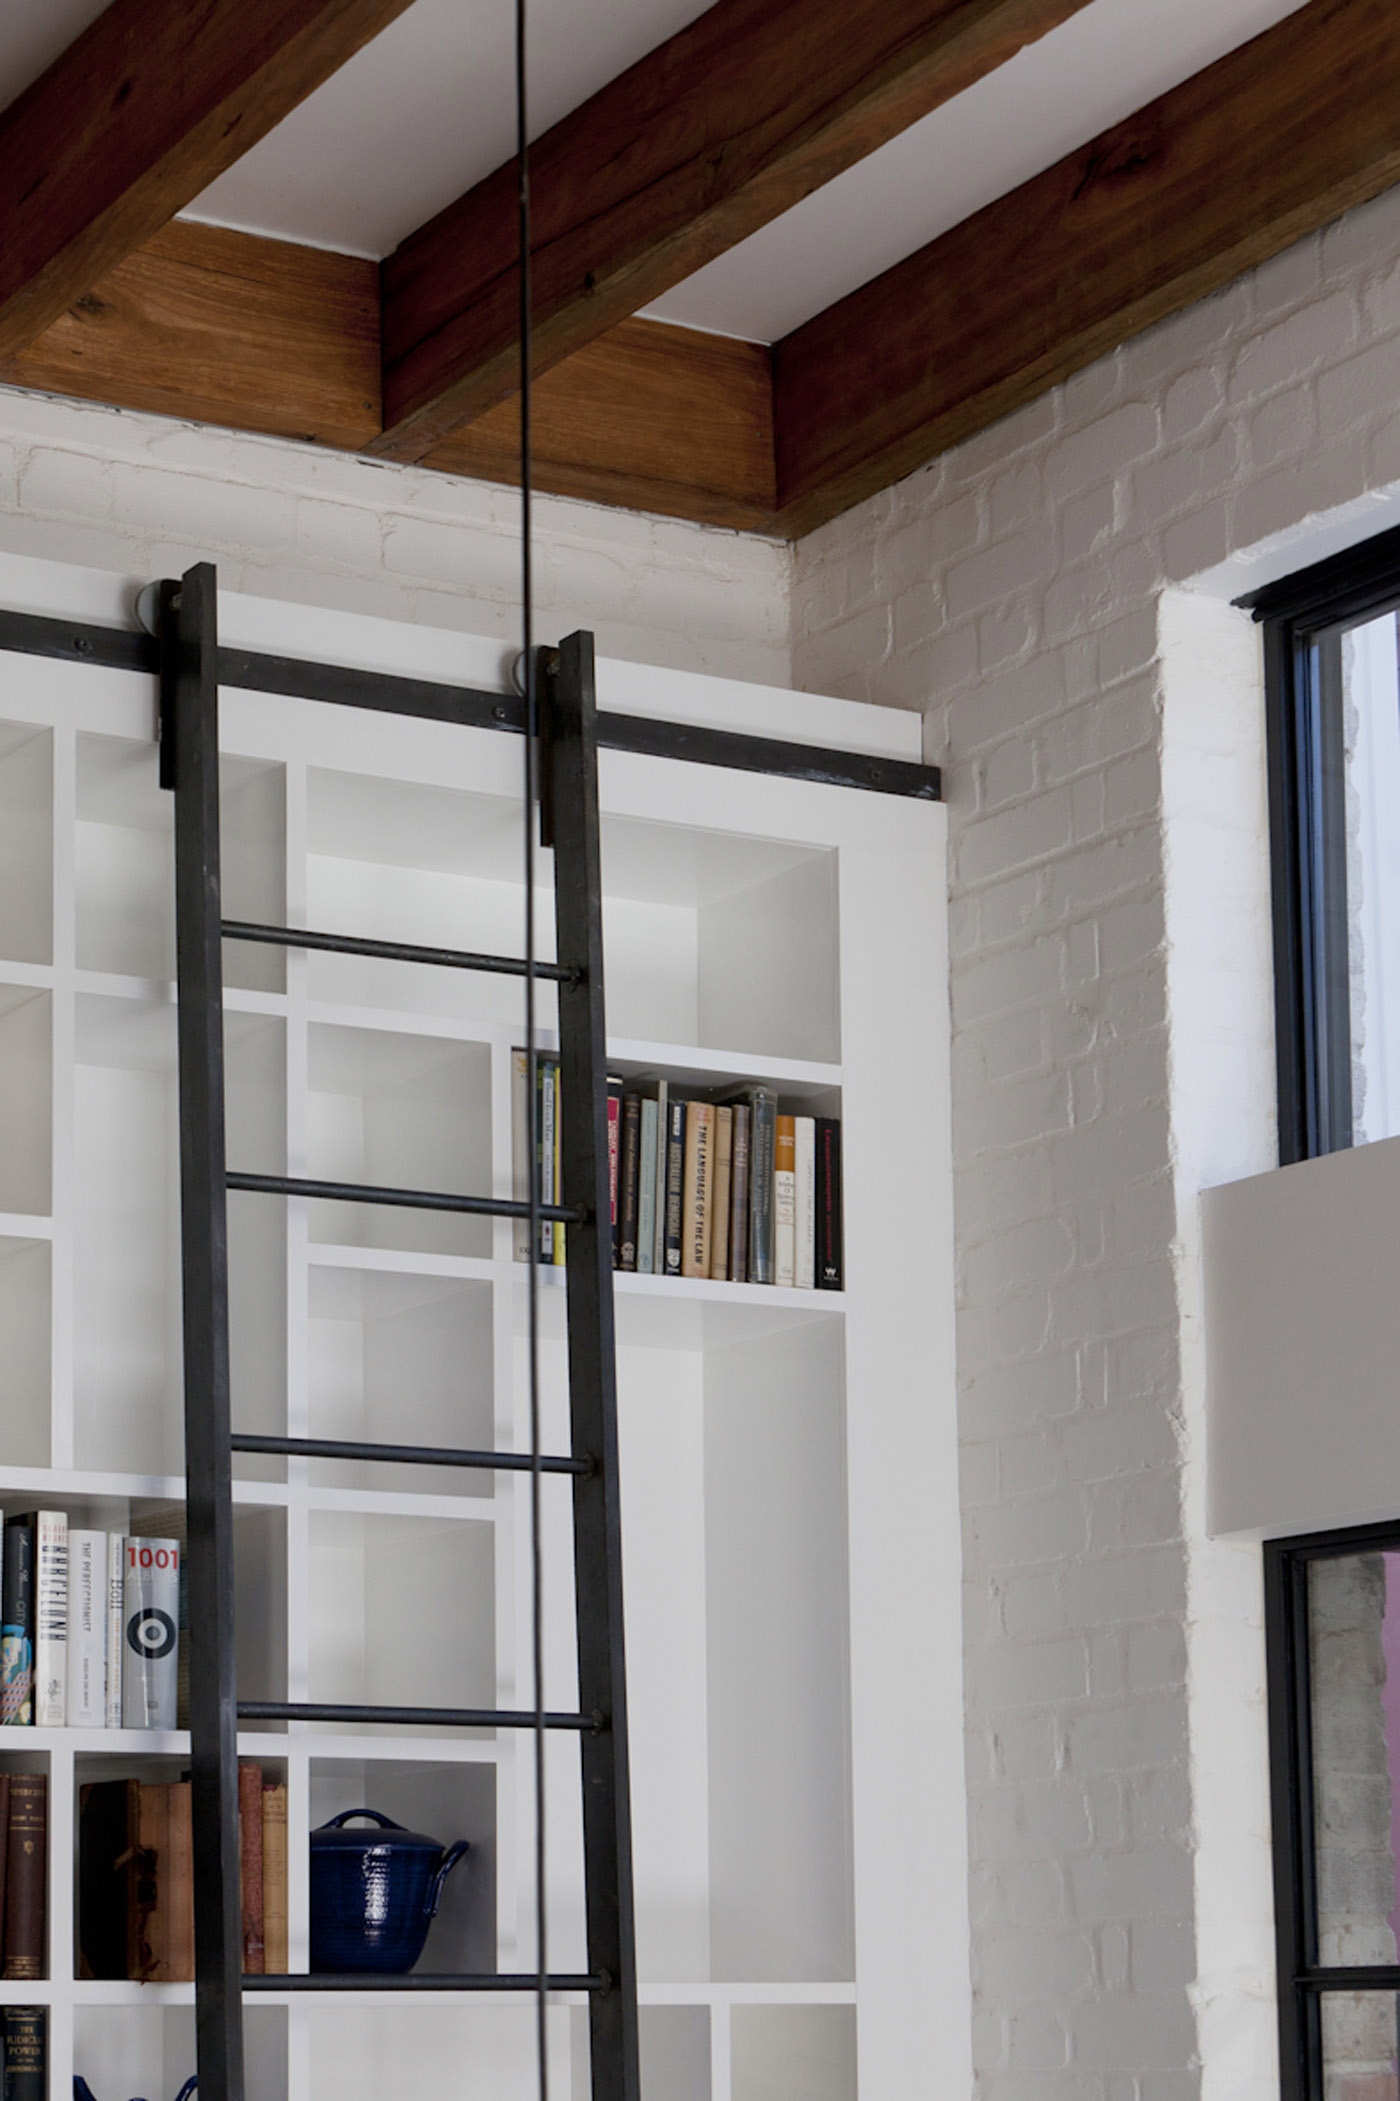 Smee Schoff House by award winning Sydney residential architecture firm Sam Crawford Architects. Detail of movable ladder on double-height bookcase